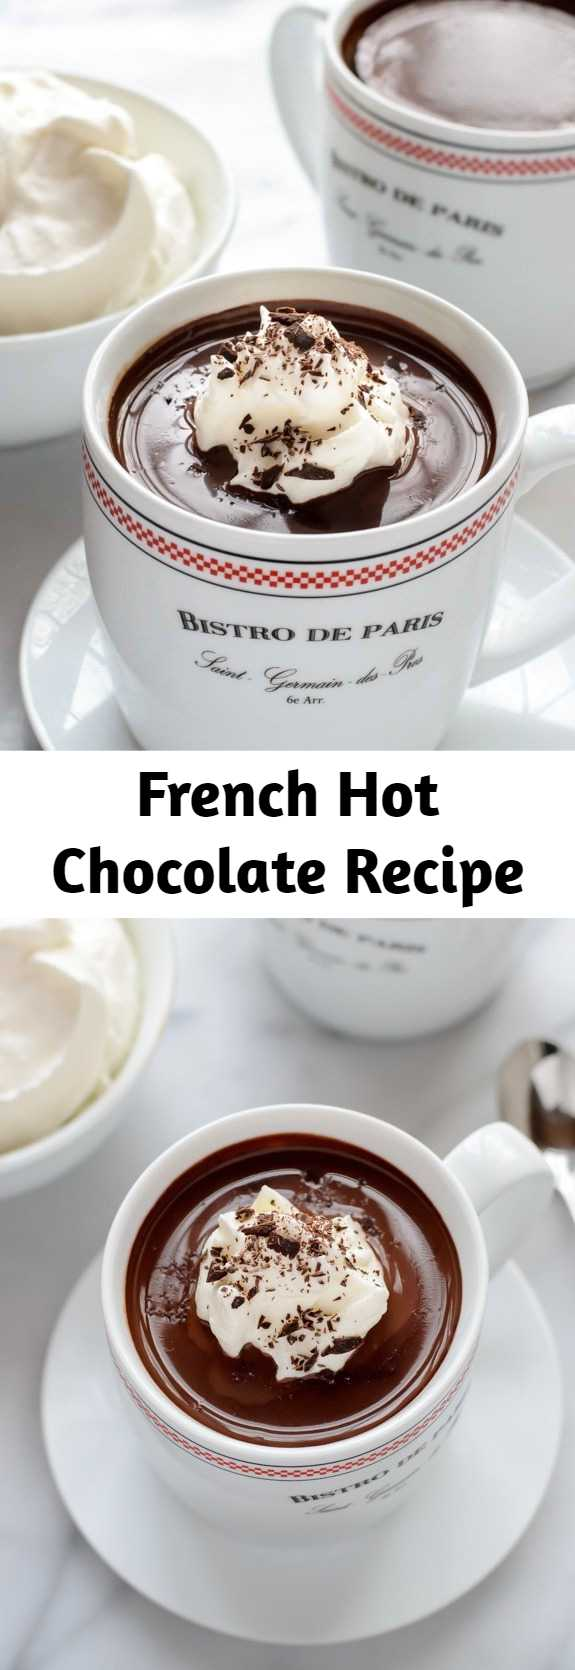 French Hot Chocolate Recipe - The most decadent dark hot chocolate recipe that tastes just like the French hot chocolate found in Paris cafés. Intense, rich, and absolute heaven for any chocolate lover. Recipe based off of the famous Café Angelina in Paris.